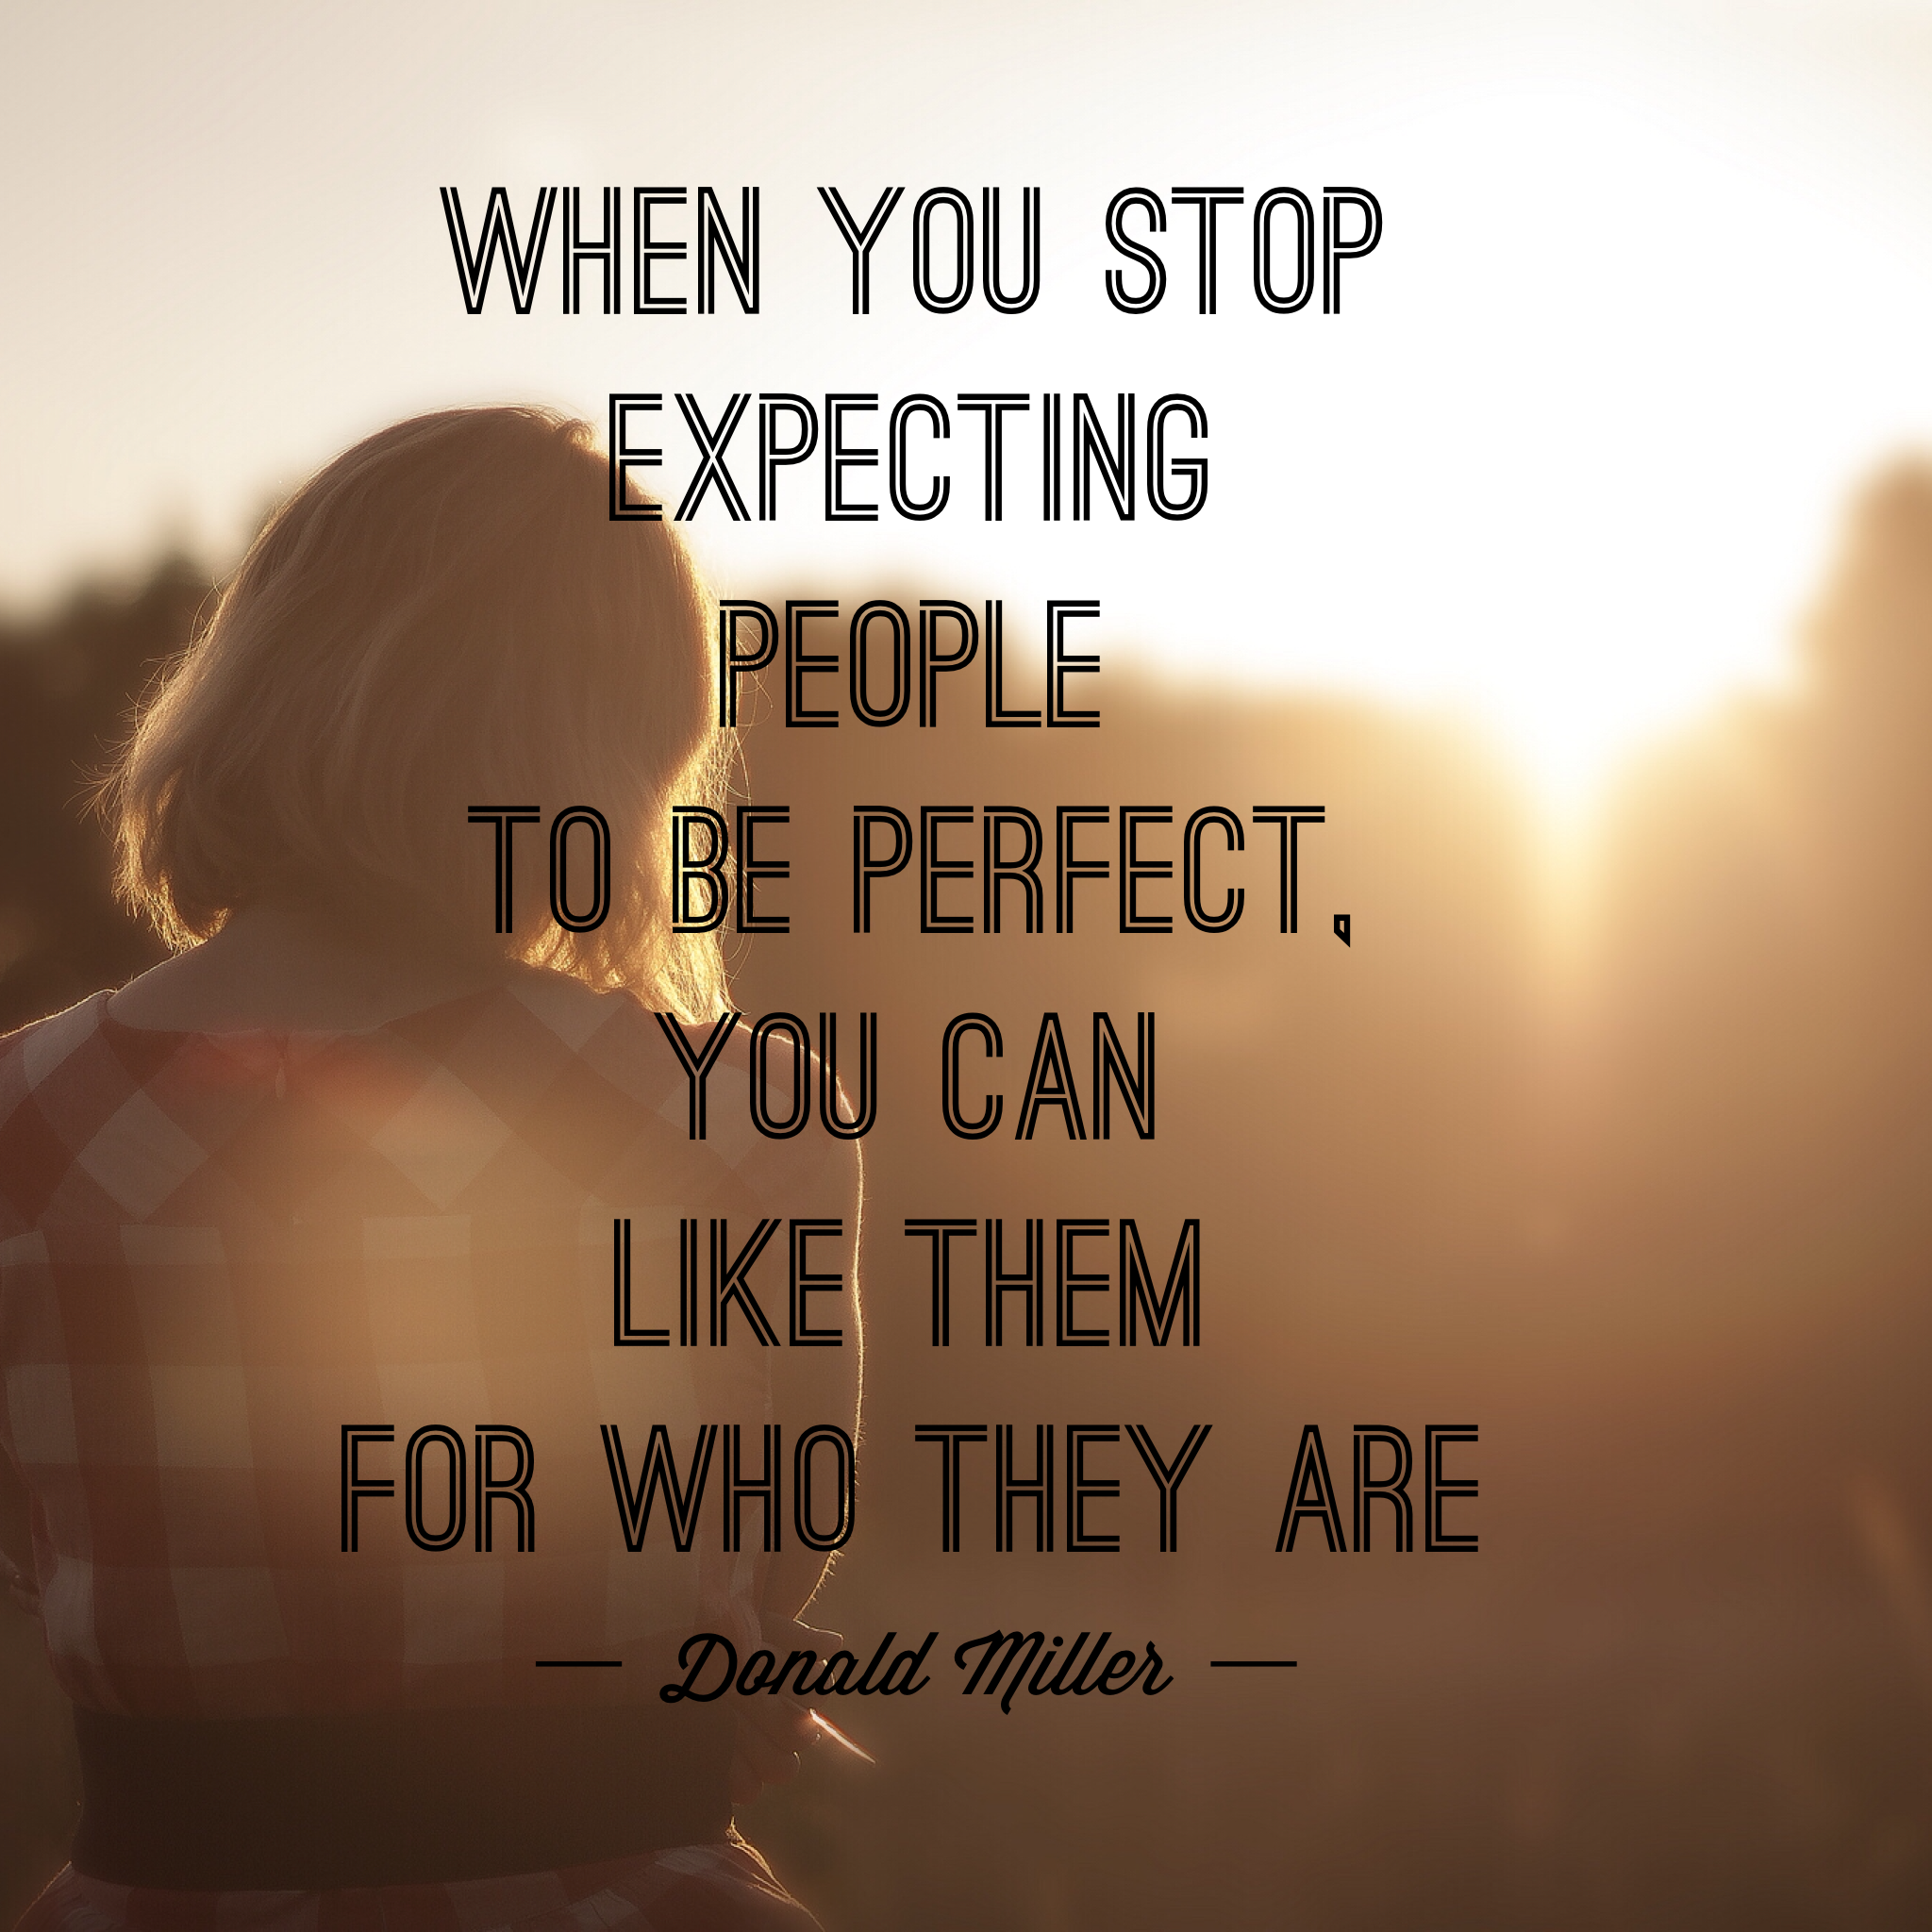 10 Expectation Quotes To Nurture The Soul